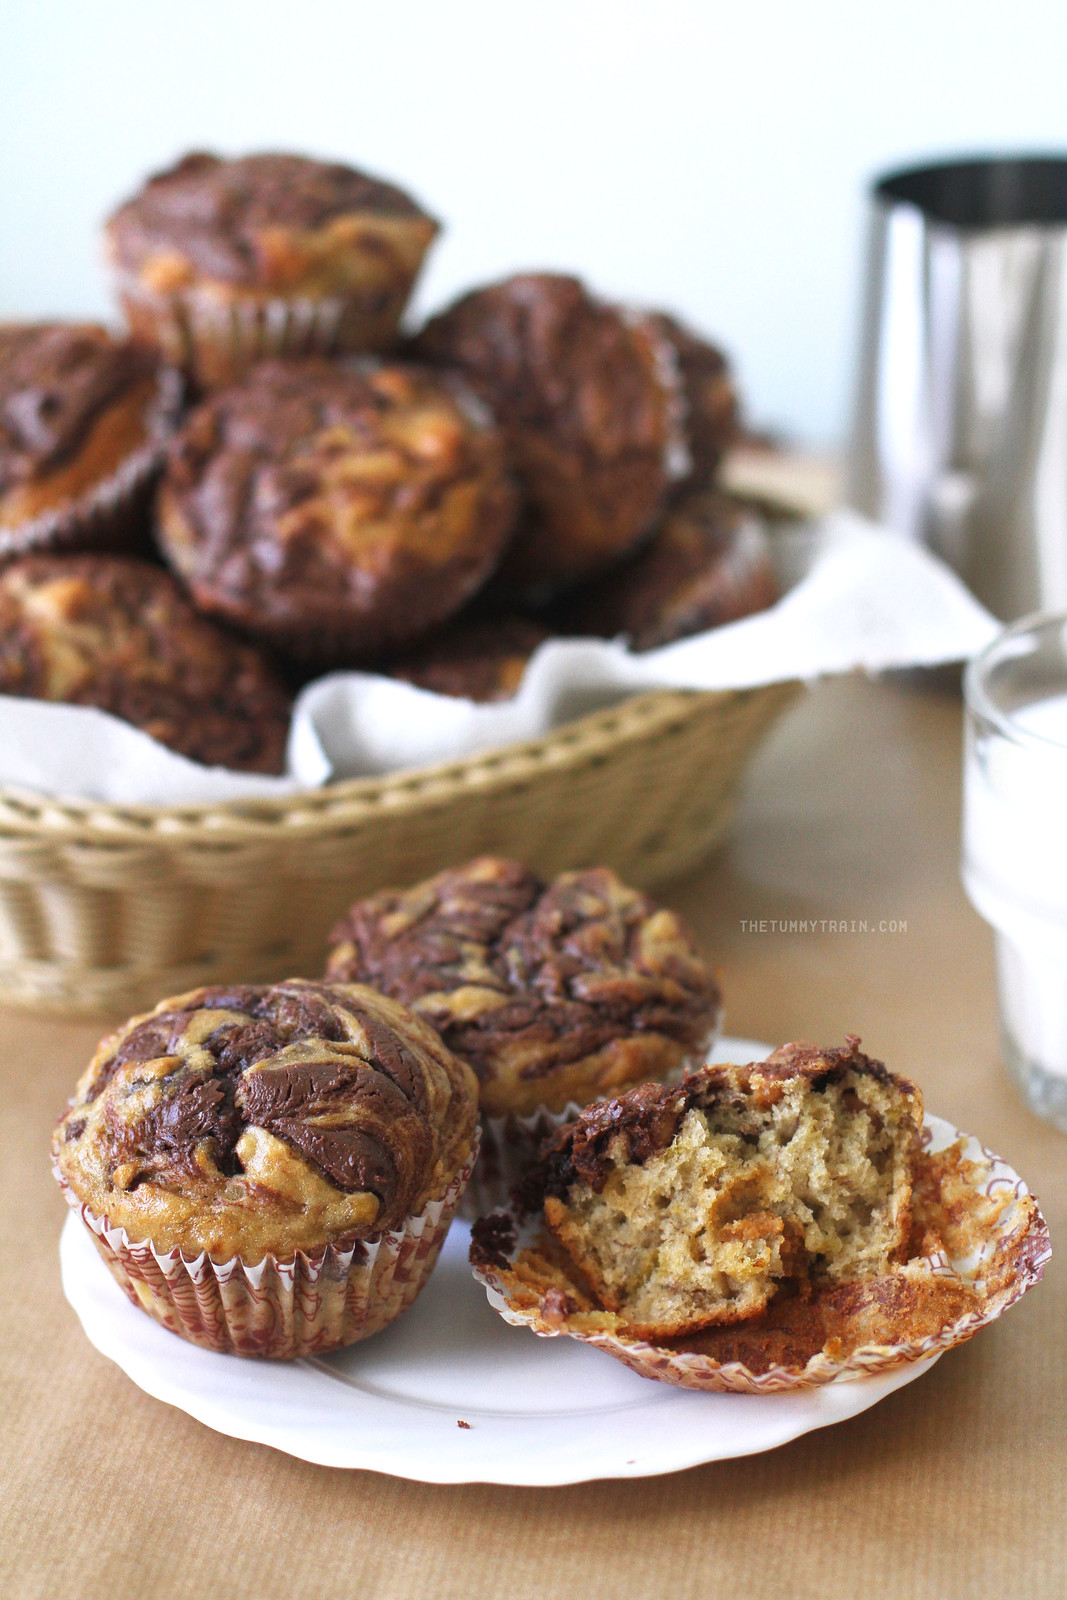 24787566746 604ec3237a h - Muffins with a crown of Nutella for World Nutella Day this year [VIDEO]